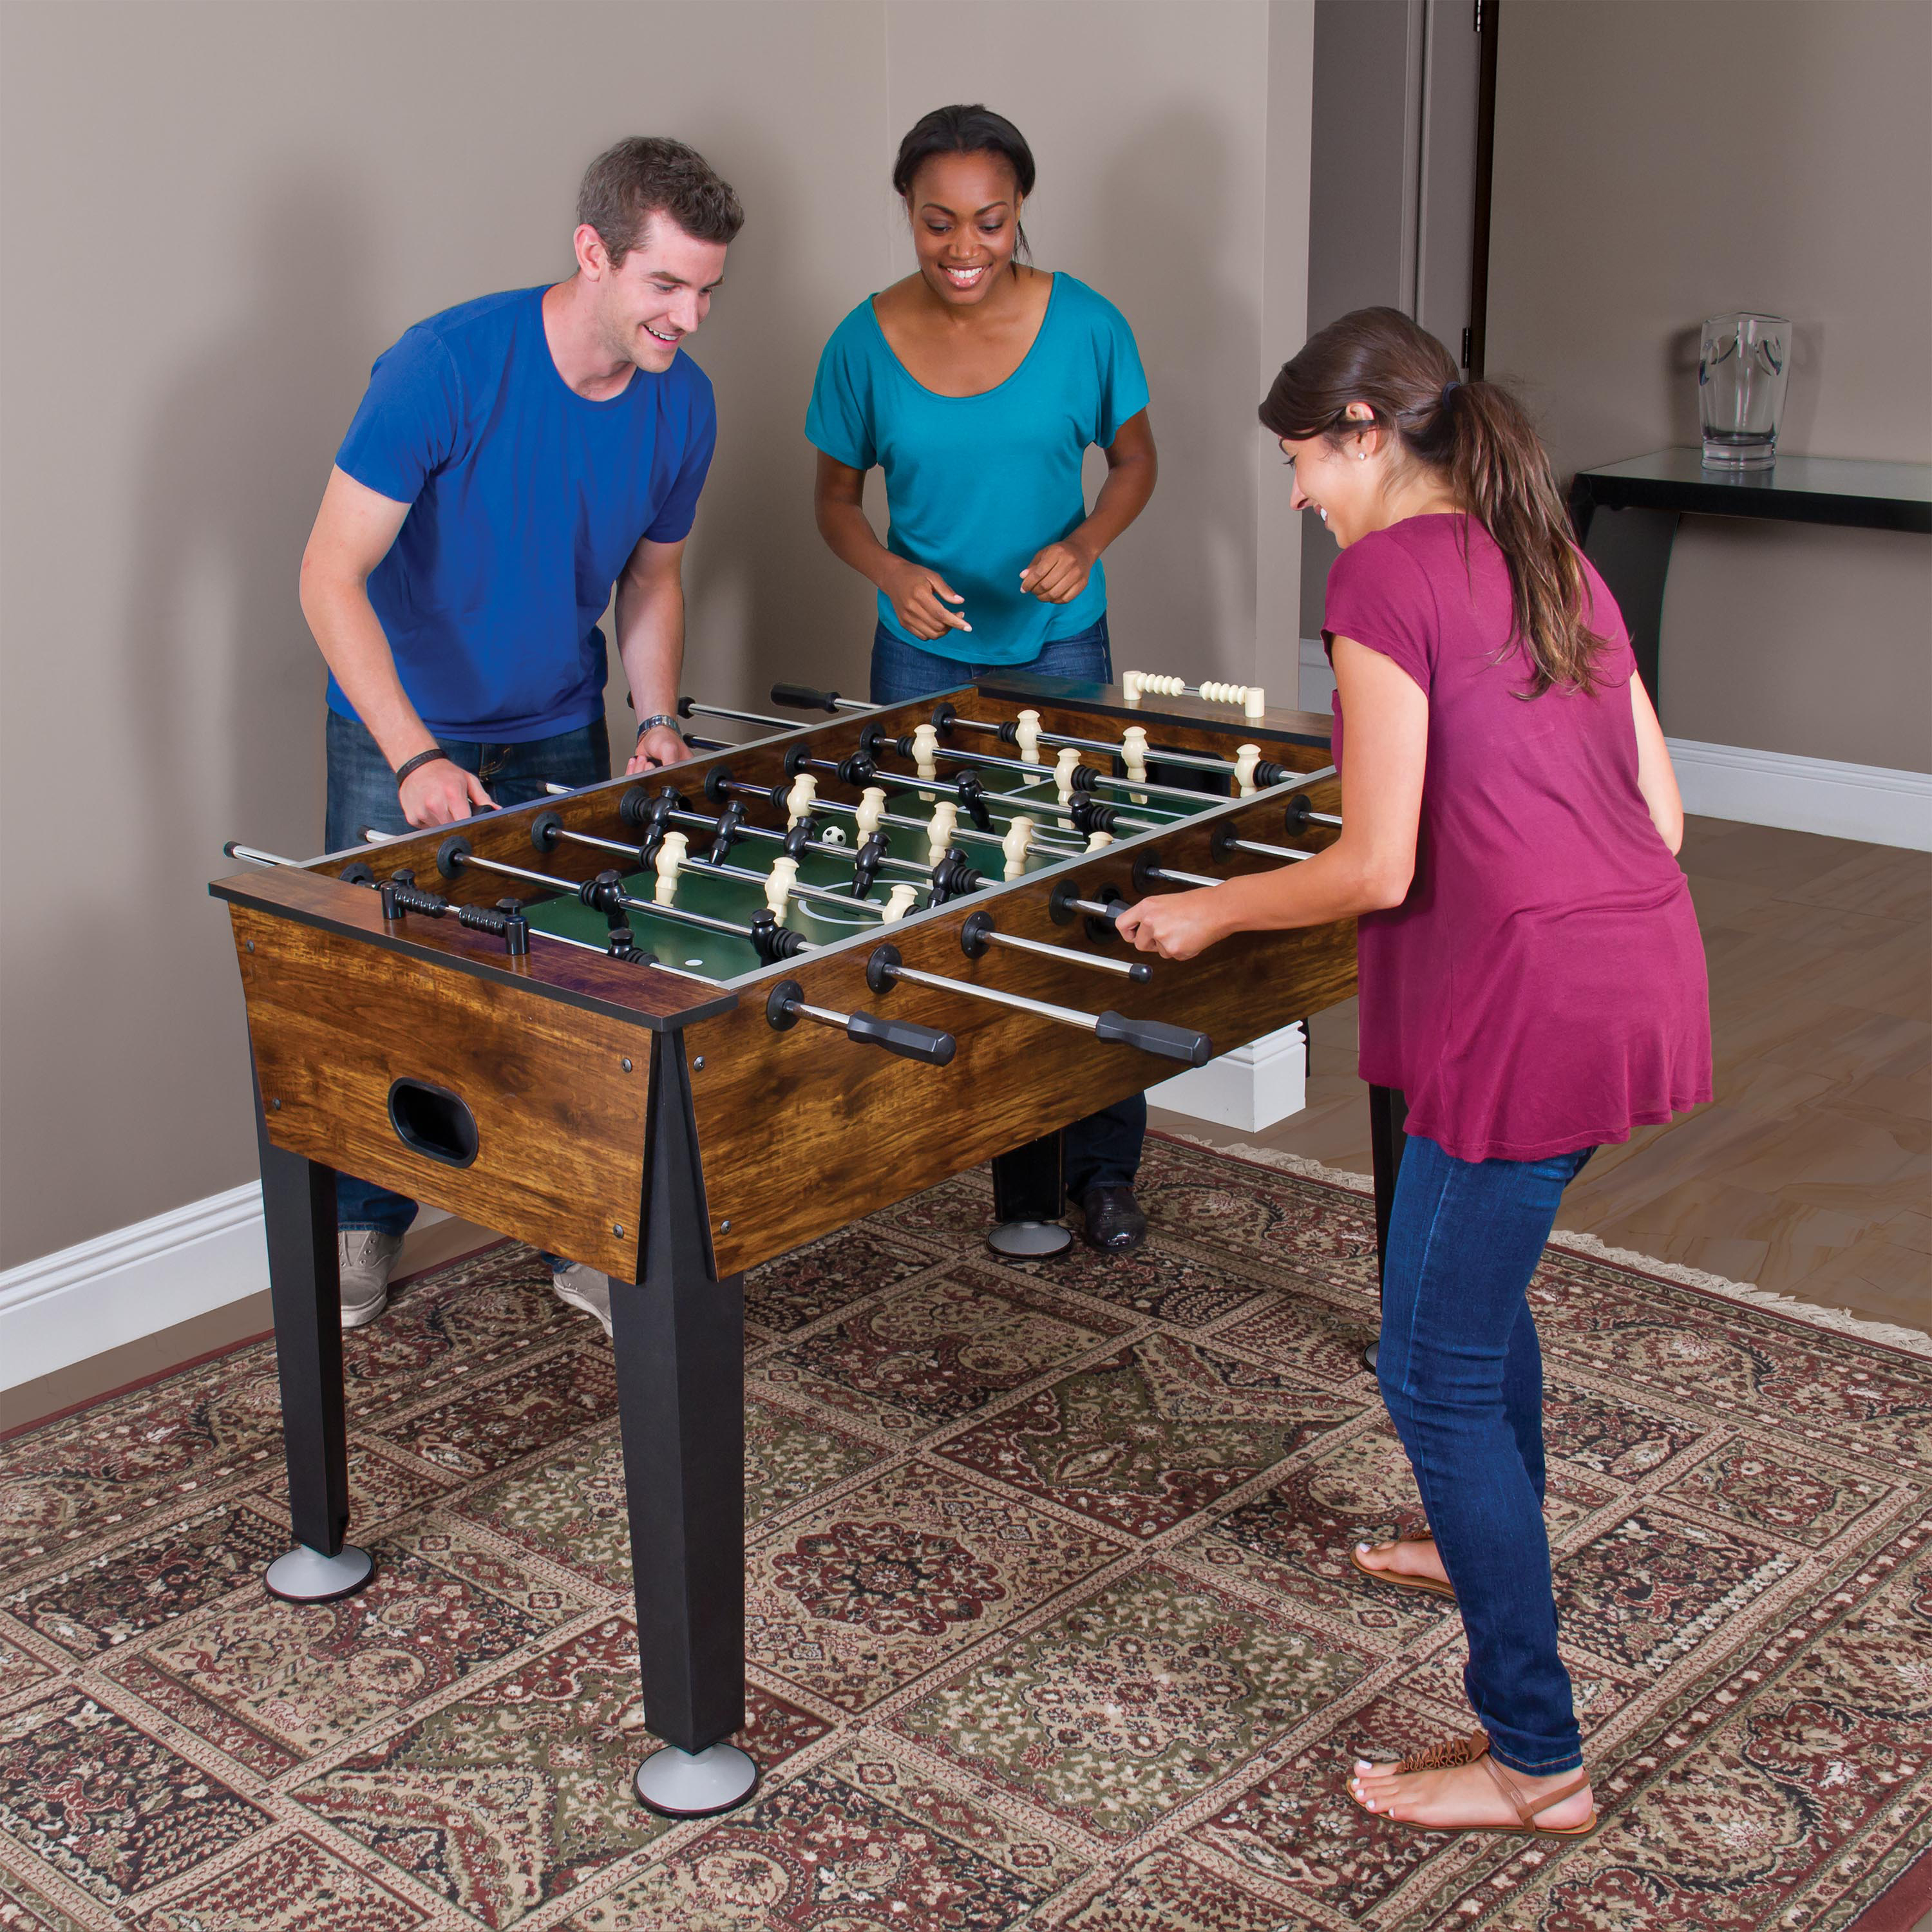 eastpoint newcastle foosball table instructions